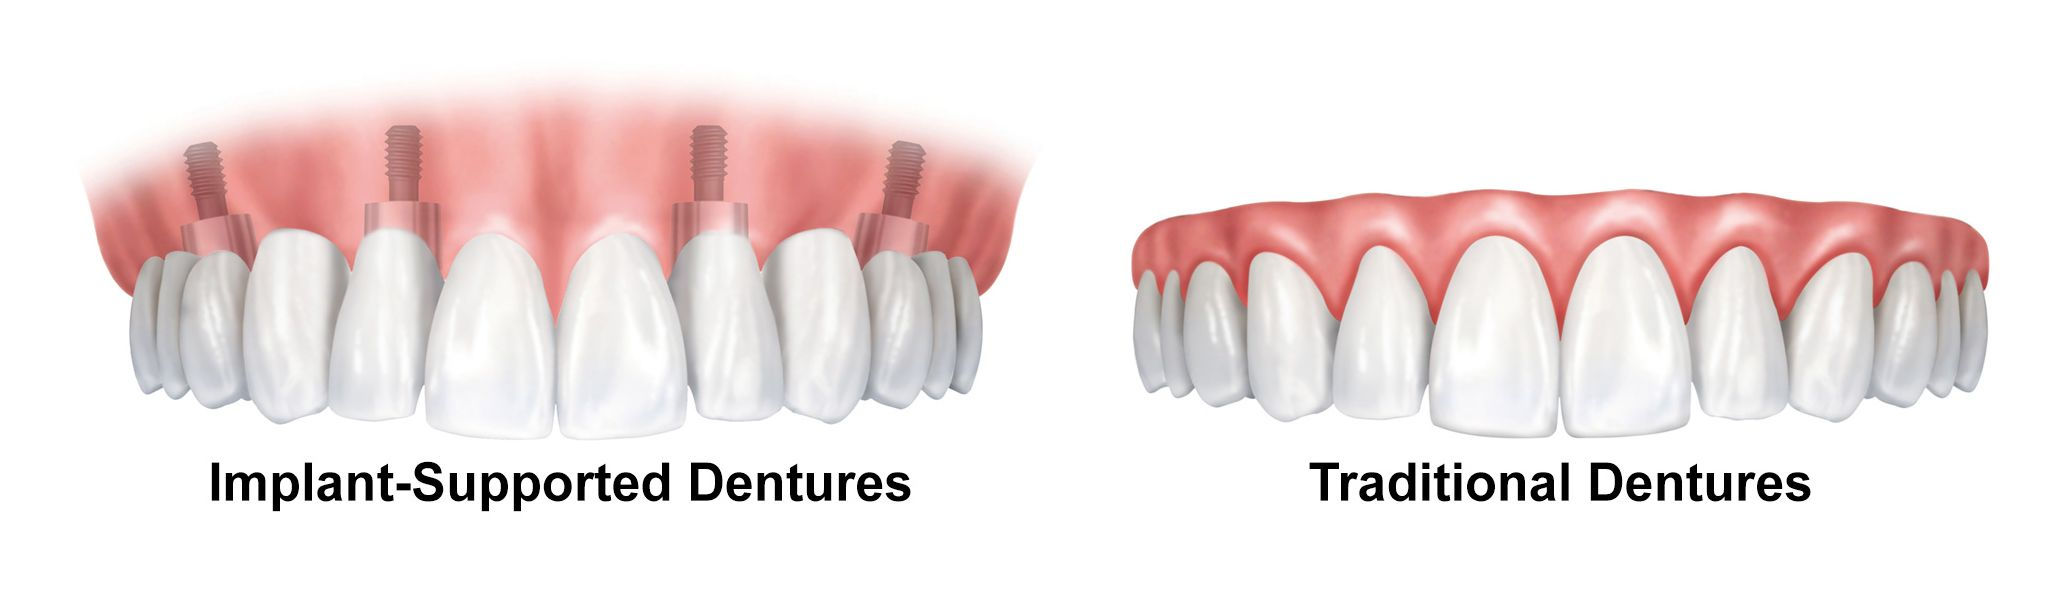 Traditional and implant-supported dentures